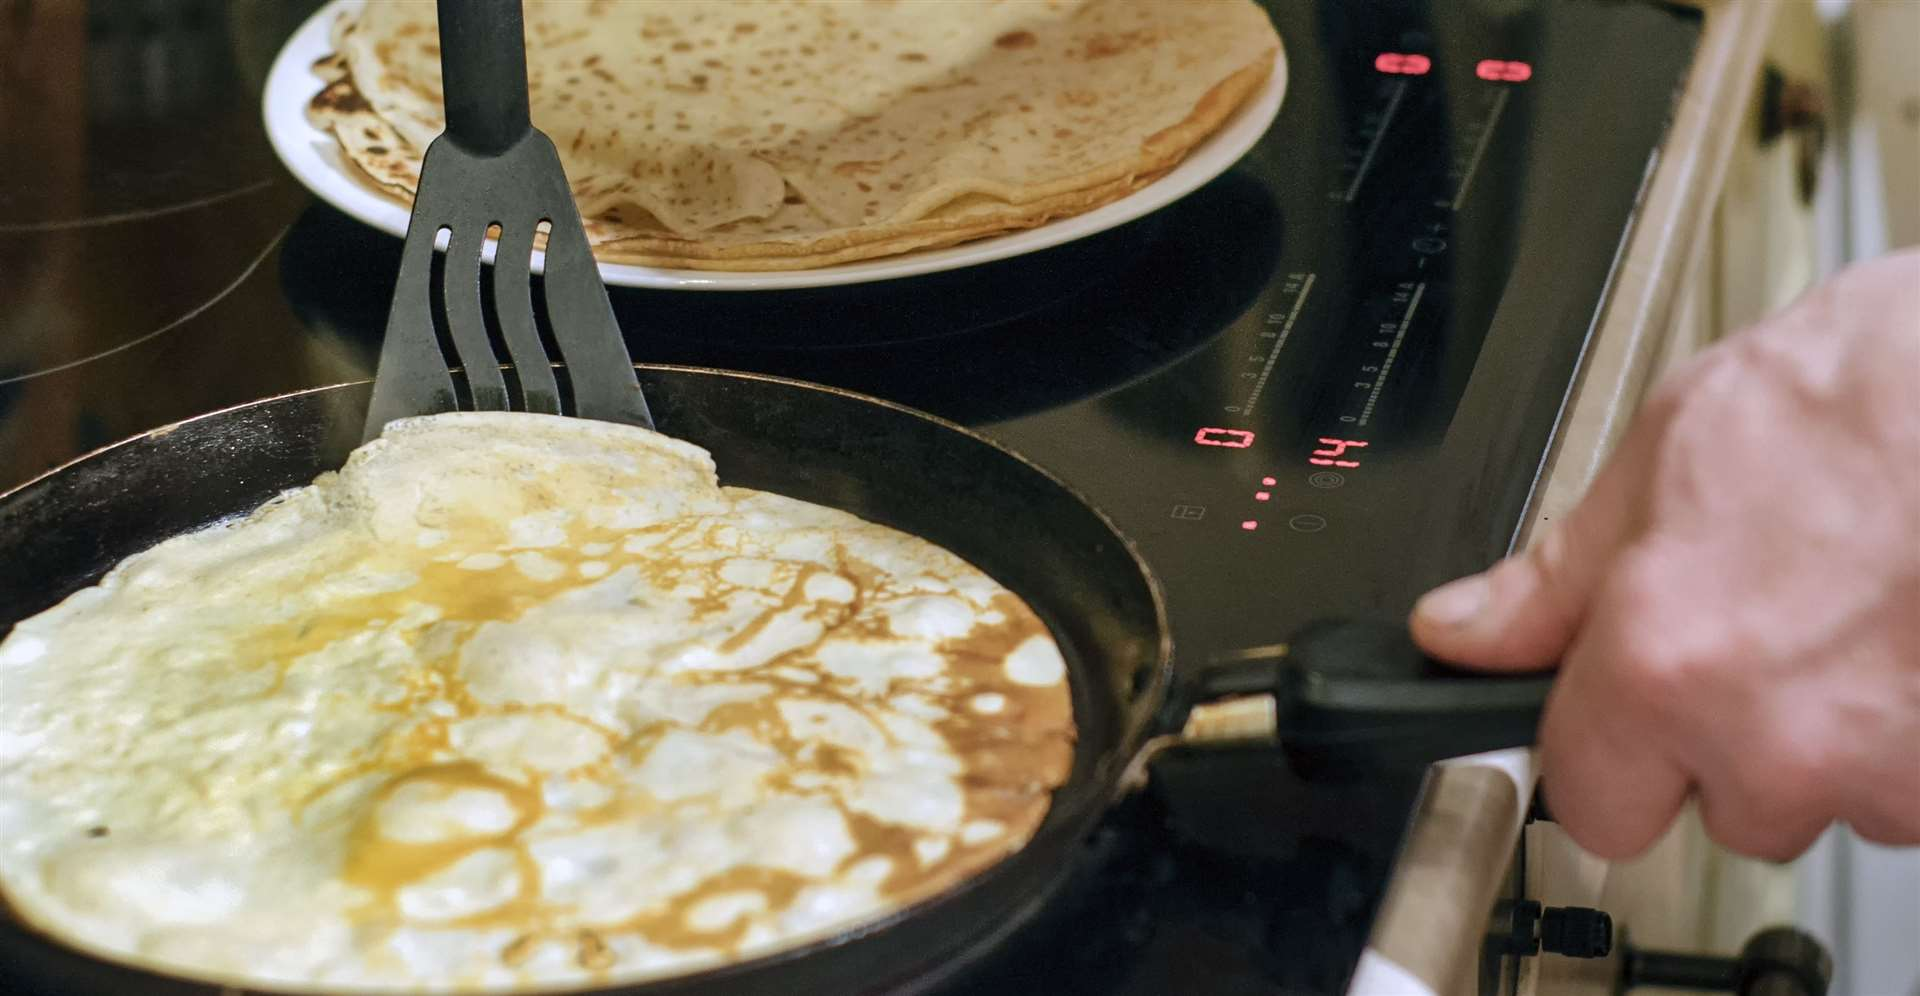 Pancake Day is on Tuesday, February 25 this year